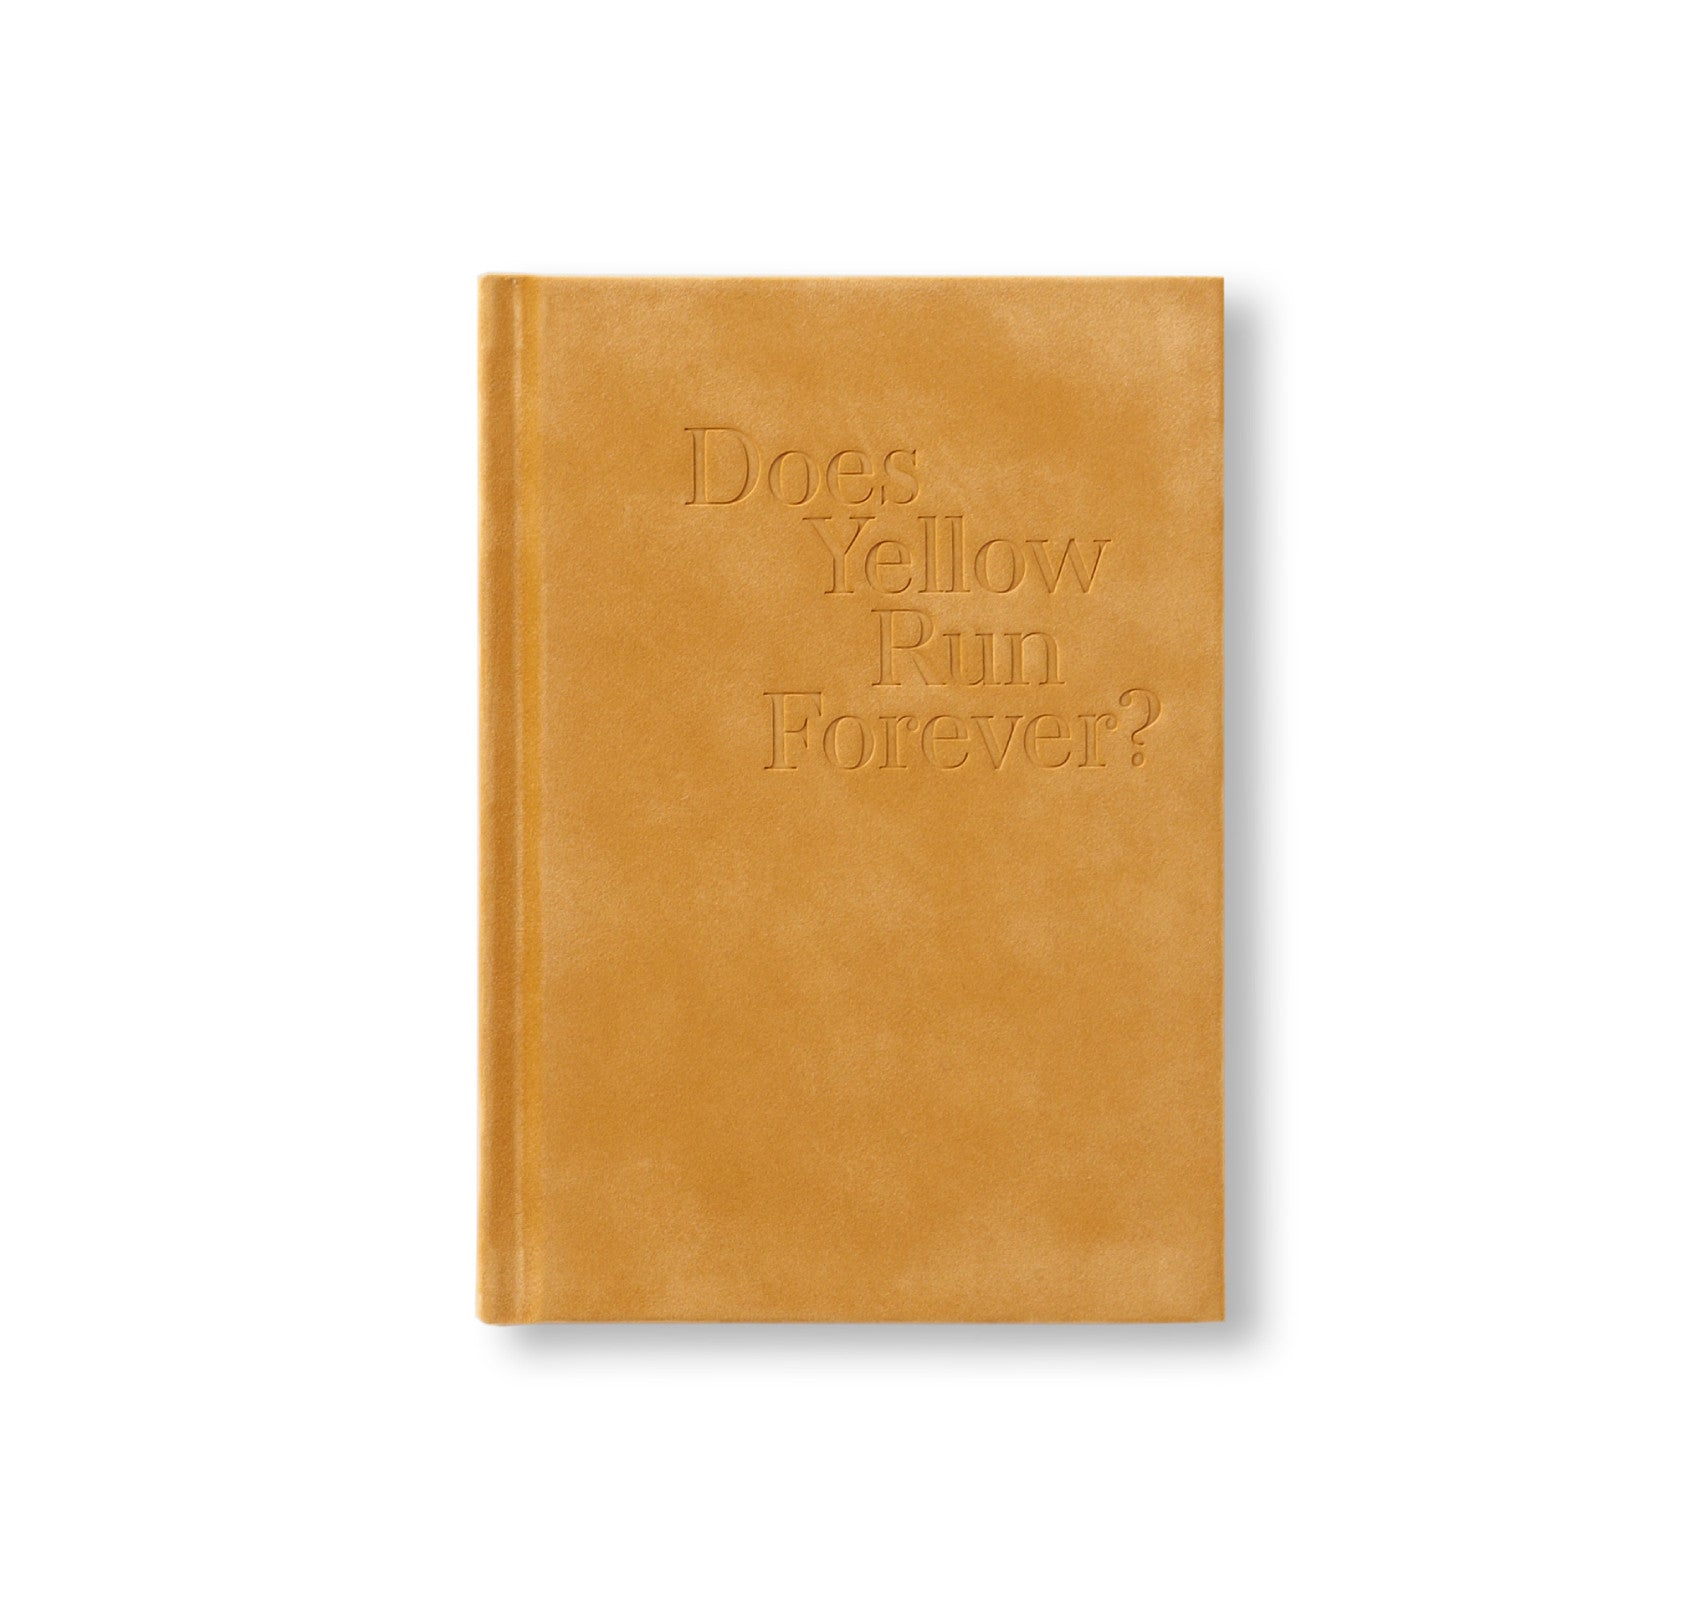 DOES YELLOW RUN FOREVER? by Paul Graham [SIGNED]